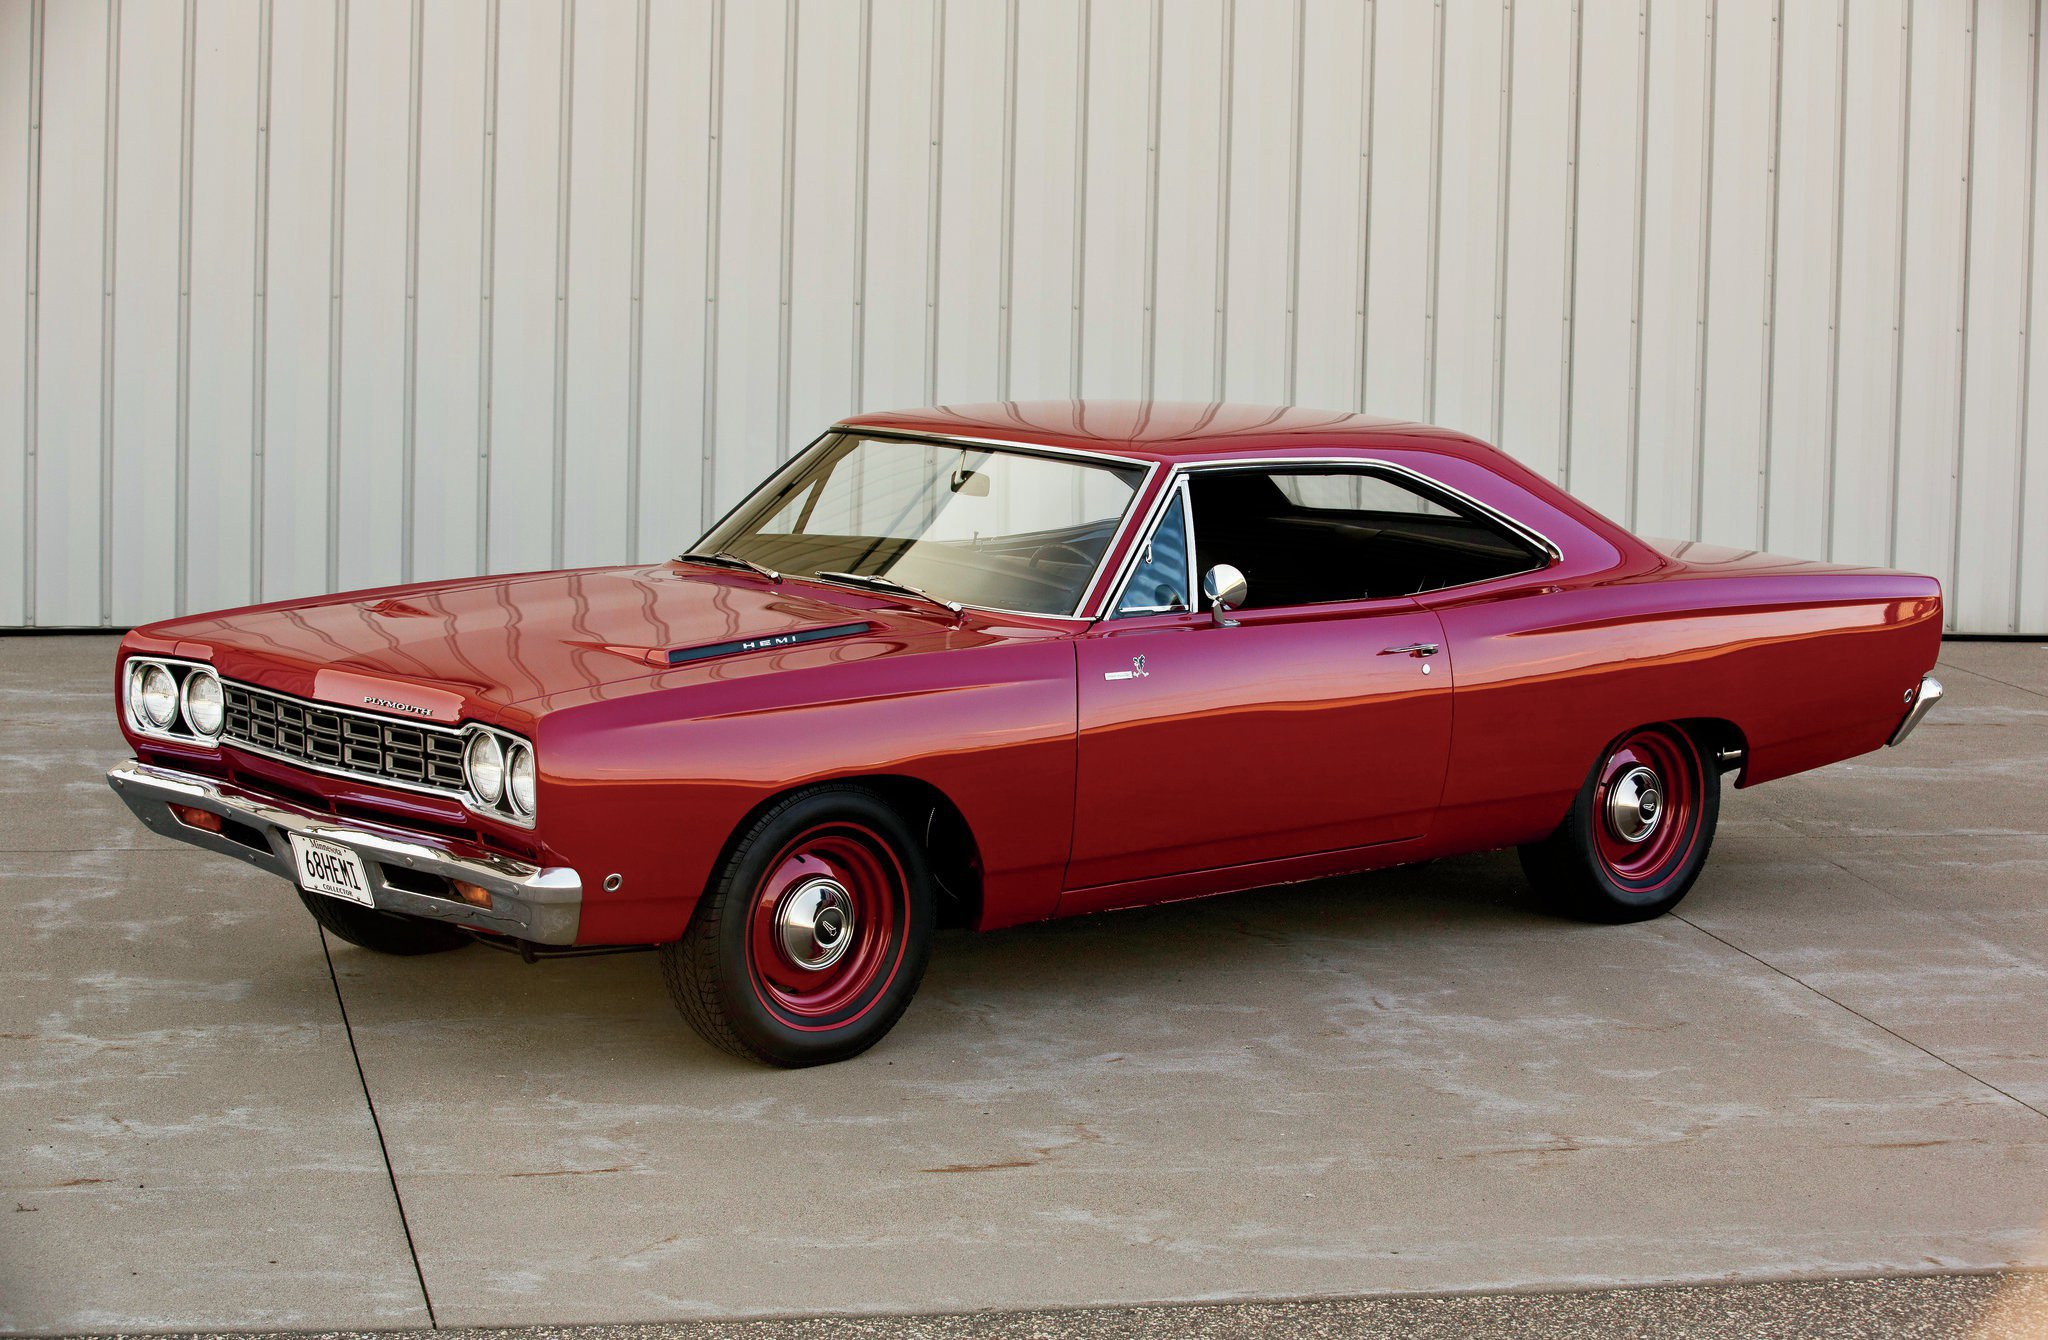 https://i2.wp.com/st.hotrod.com/uploads/sites/21/2015/04/1968-plymouth-road-runner-hemi-front-driver-side.jpg